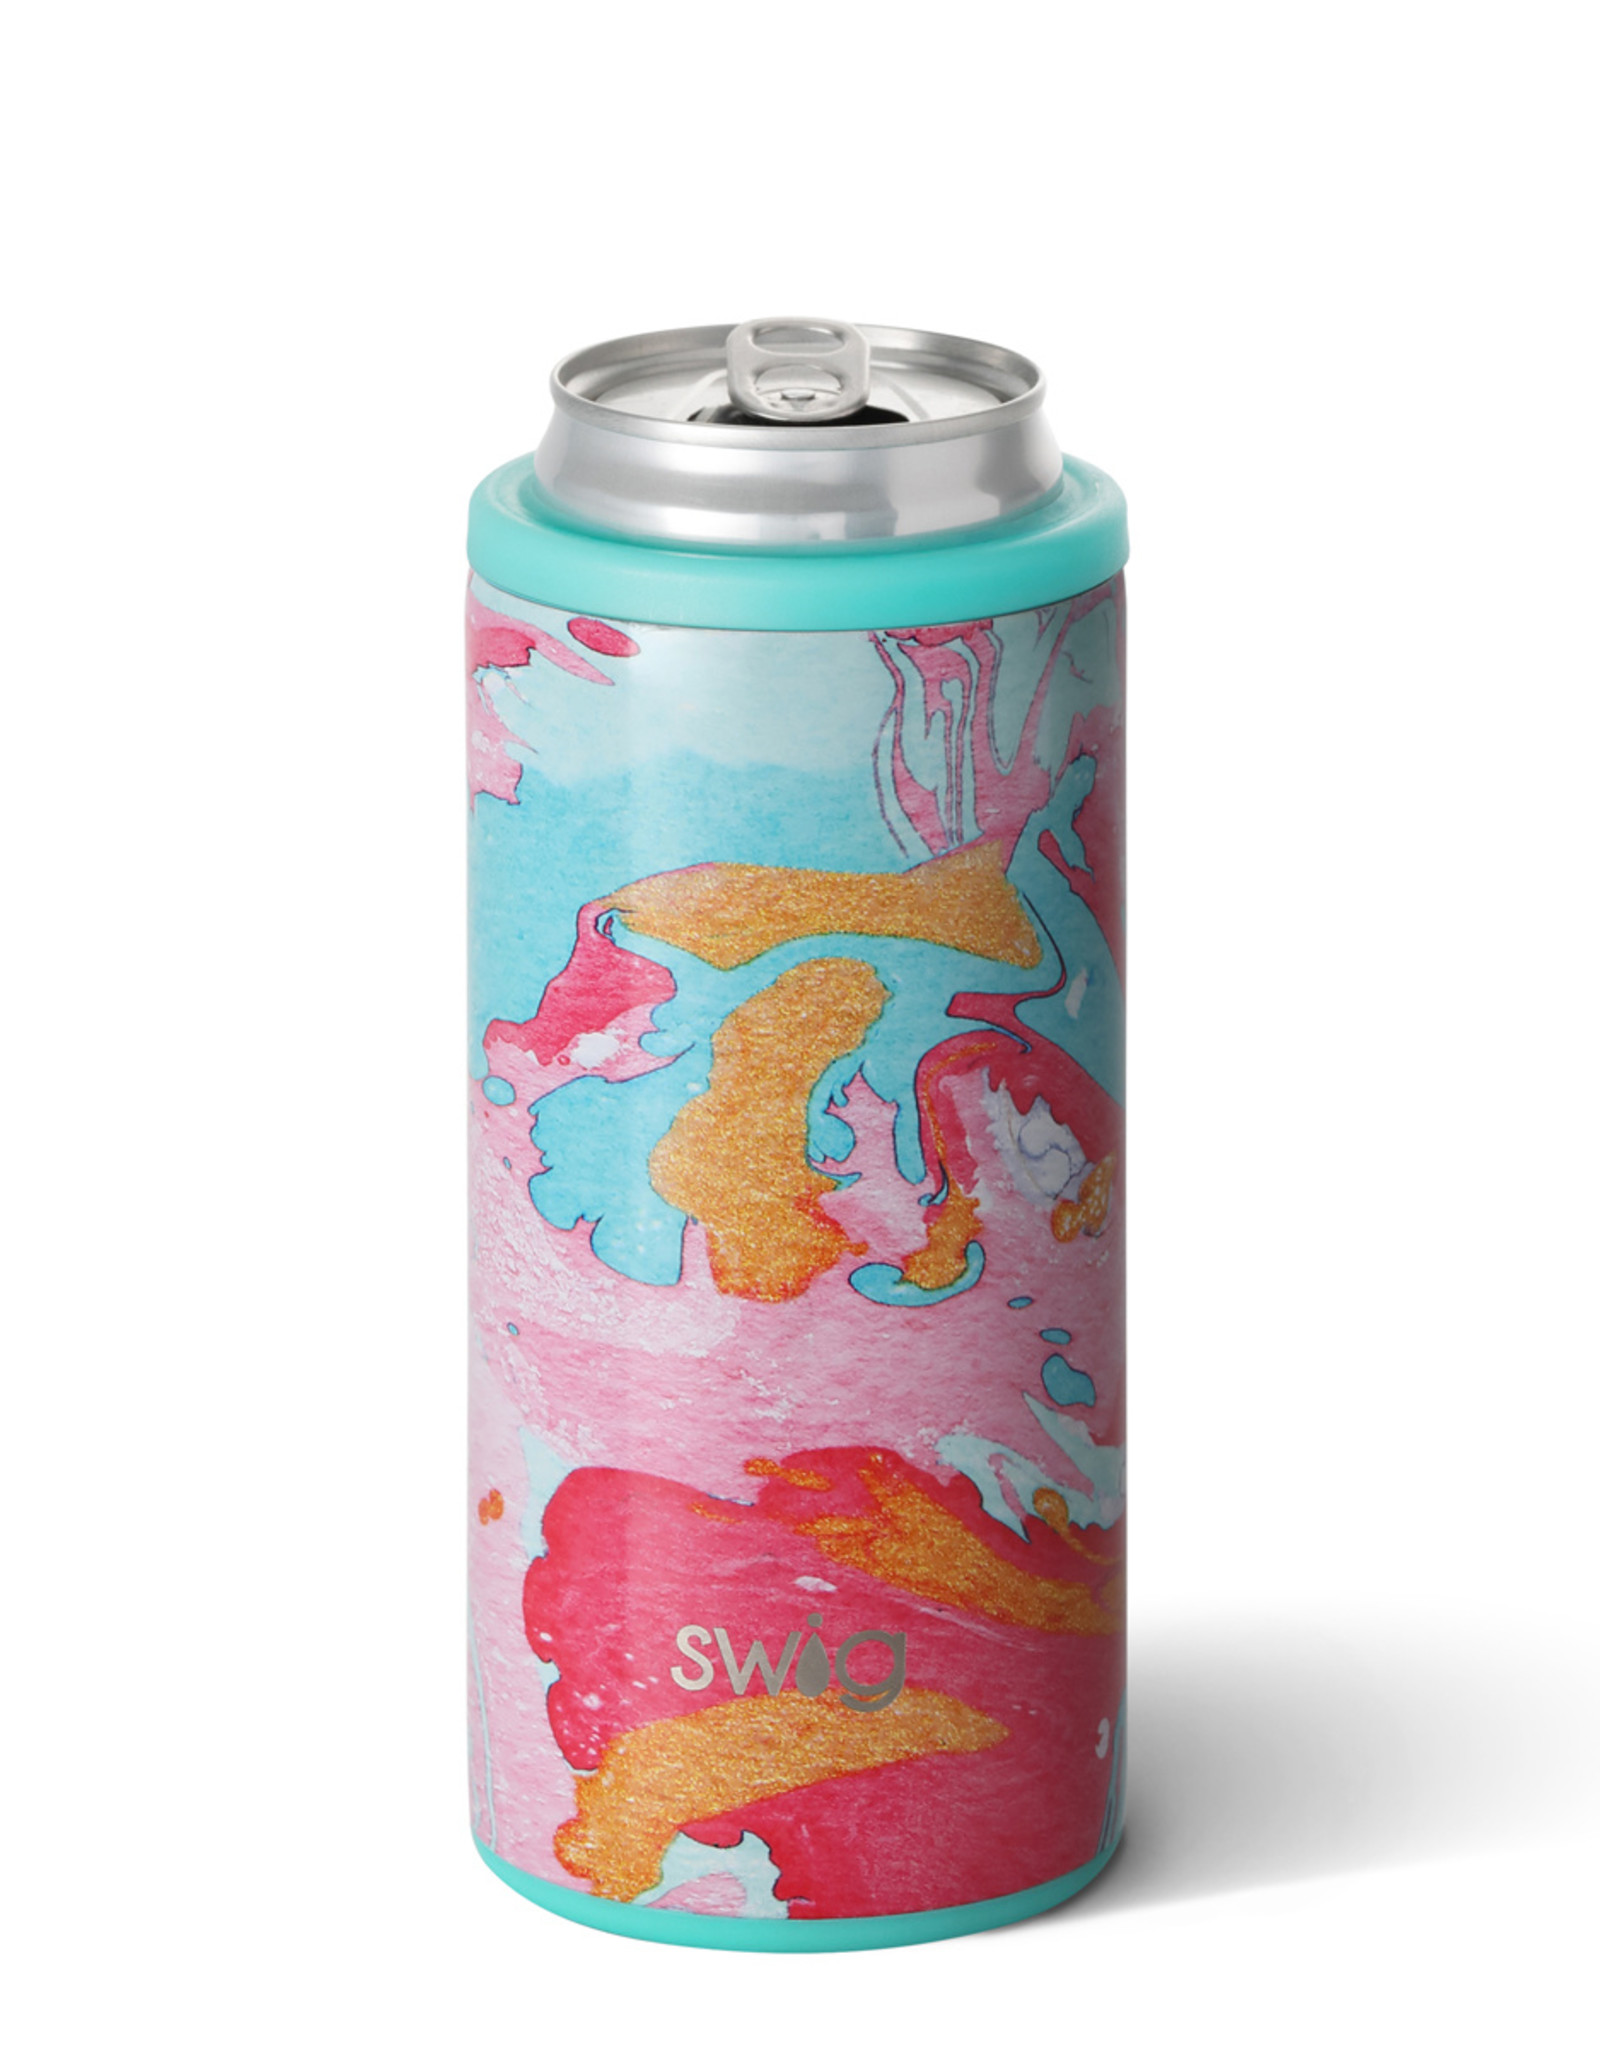 12oz Cotton Candy Skinny Can Cooler